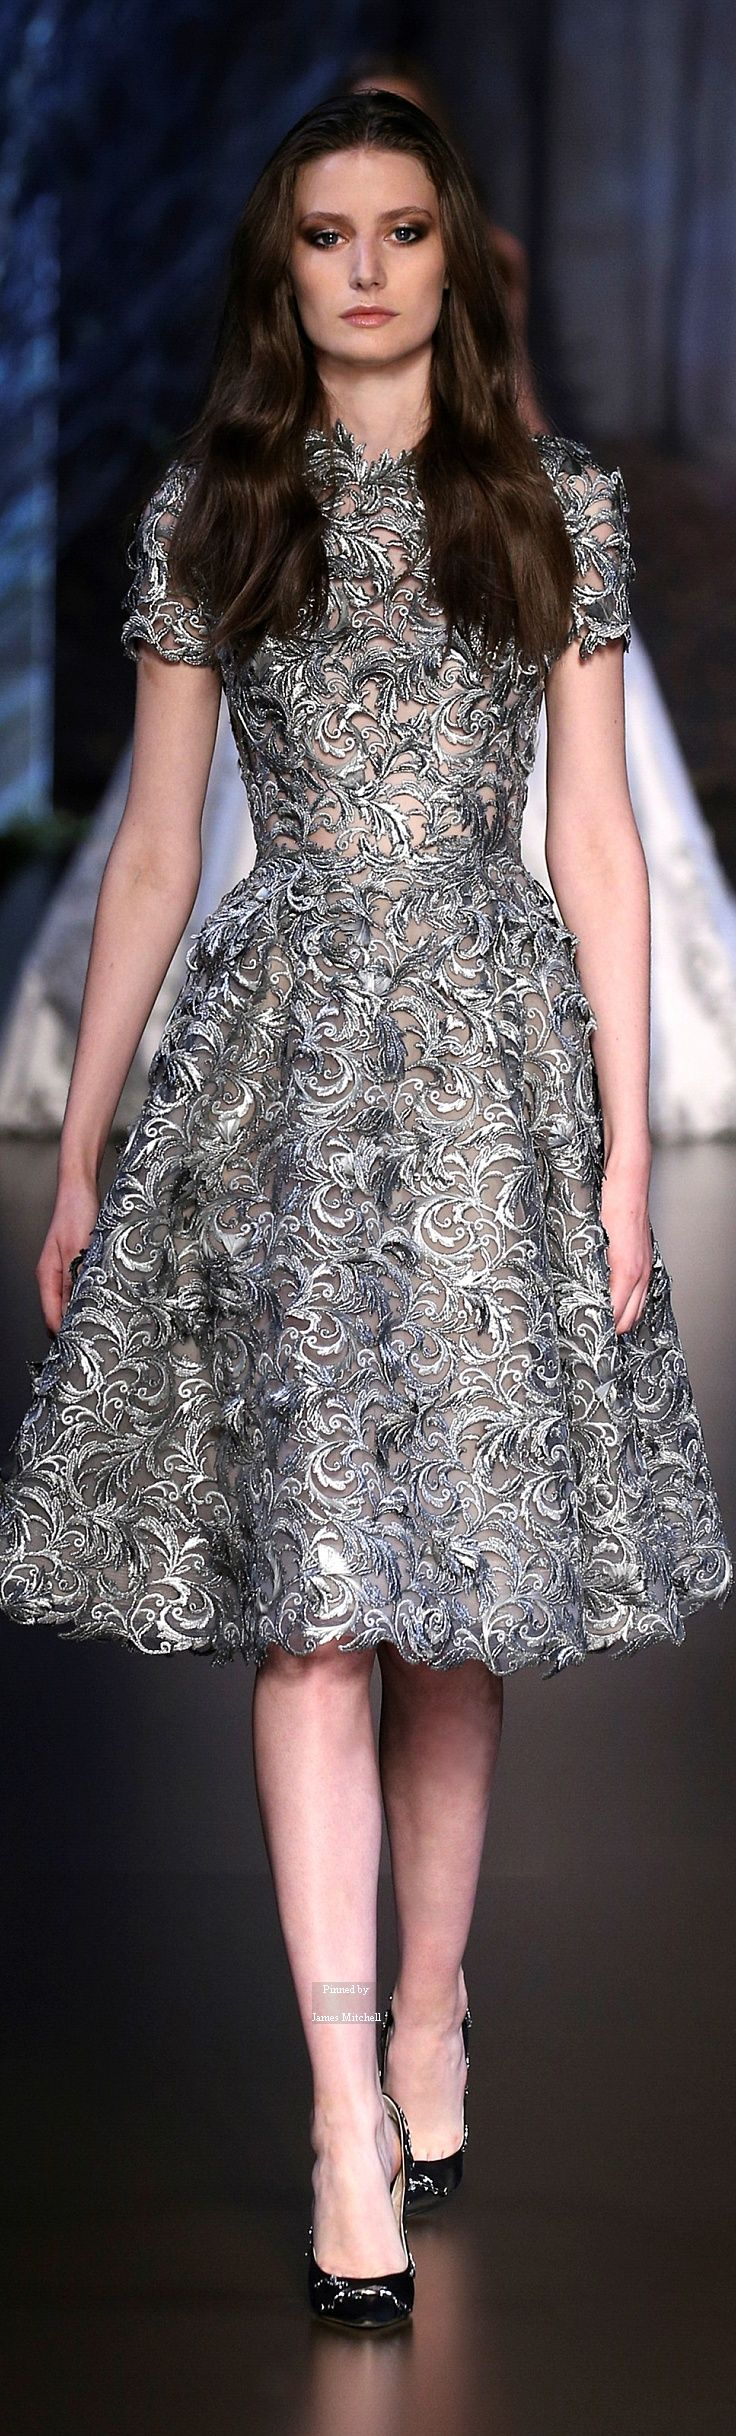 """Ralph & Russo. SubmitModest doesn't mean frumpy. For more Fashion Tips (and a free eBook): http://eepurl.com/4jcGX Do your clothing choices, manners, and poise portray the image you want to send? """"Dress how you wish to be dealt with!"""" (E. Jean) http://www.colleenhammond.com/"""